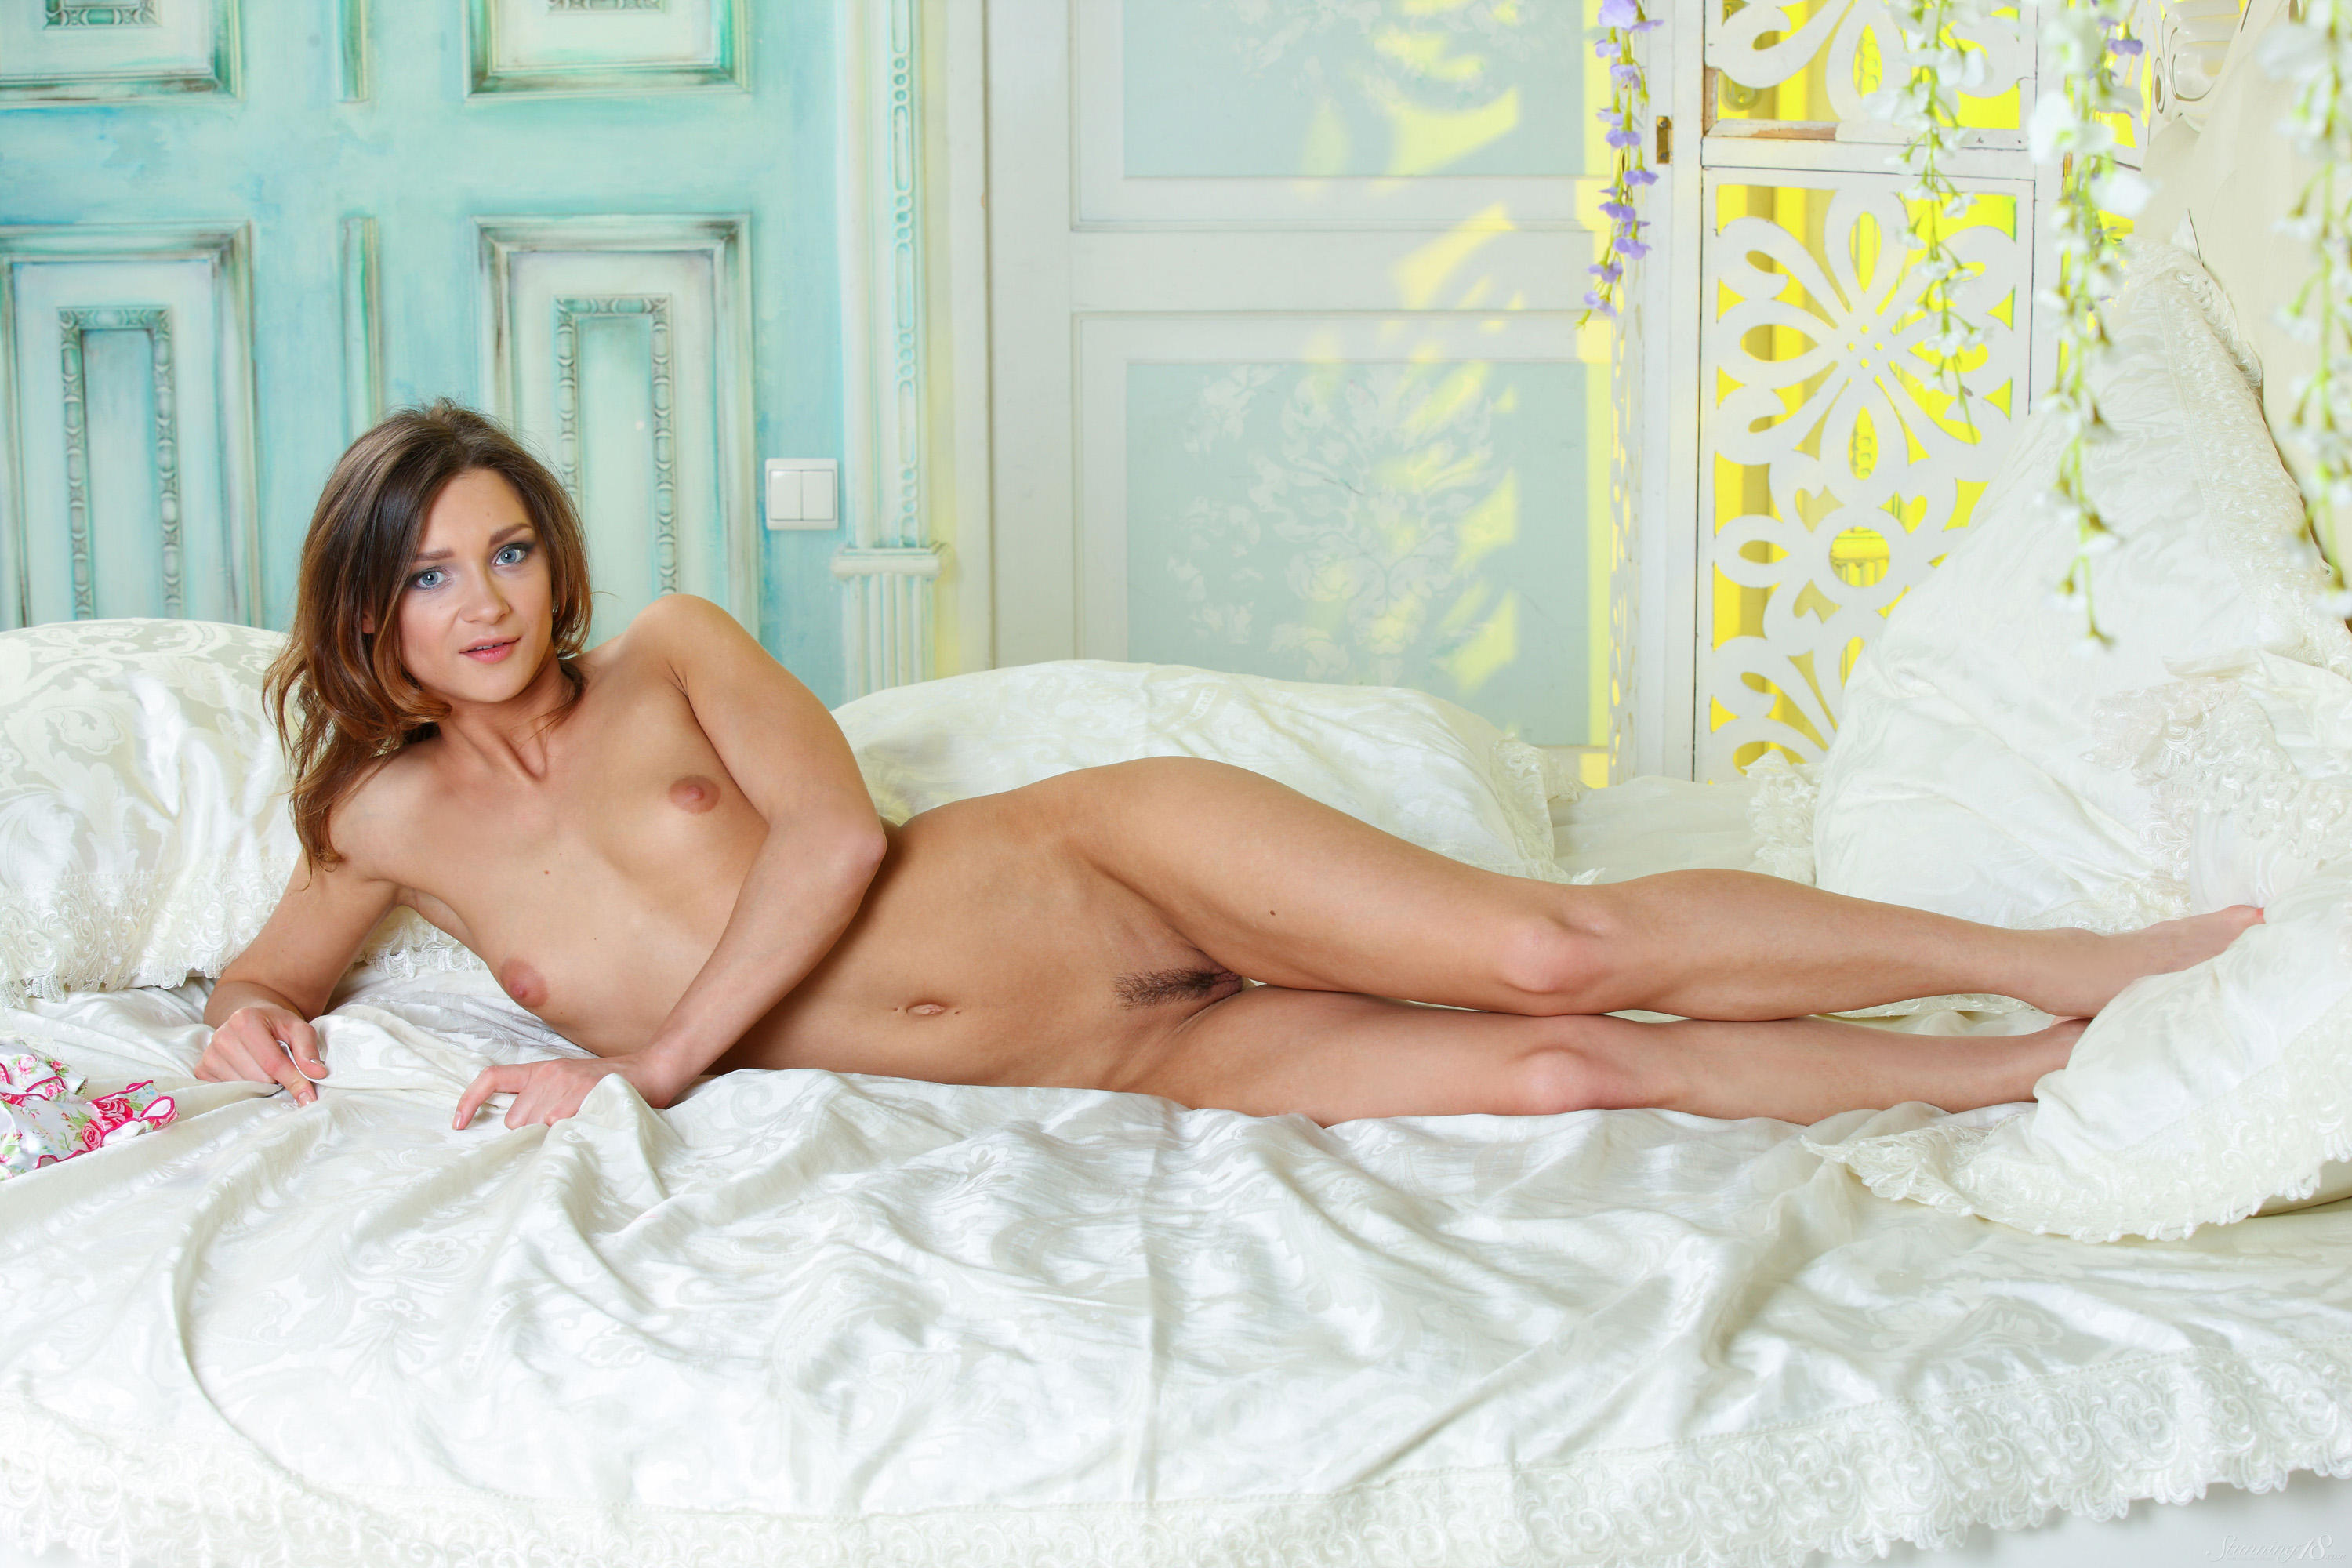 Dorie barton sexy nude pictures, download now or view online